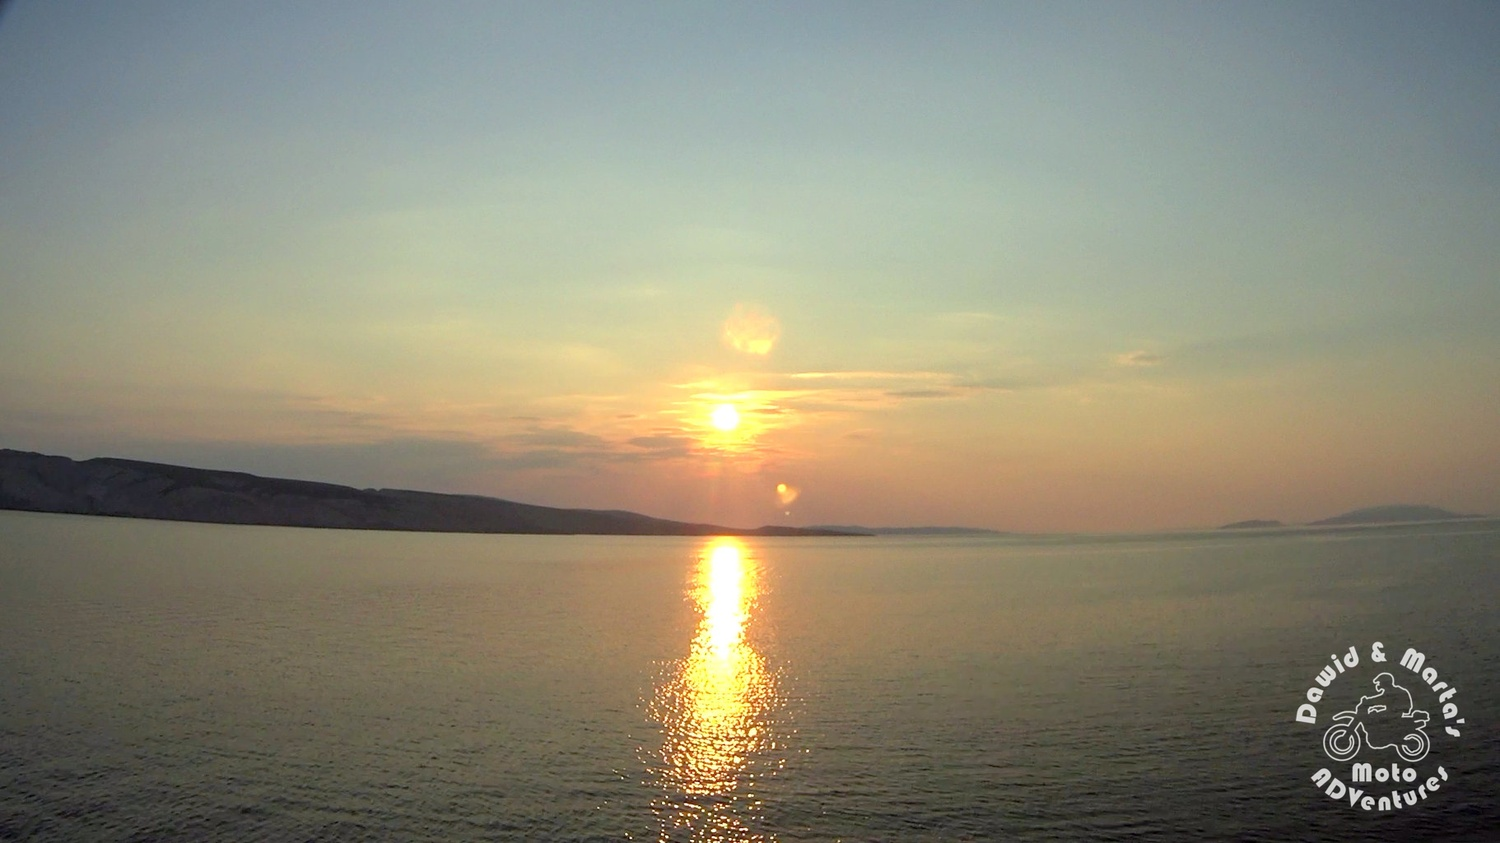 Sunset over the Adriatic Sea seen from the ferry crusing to the Pag Island.jpg